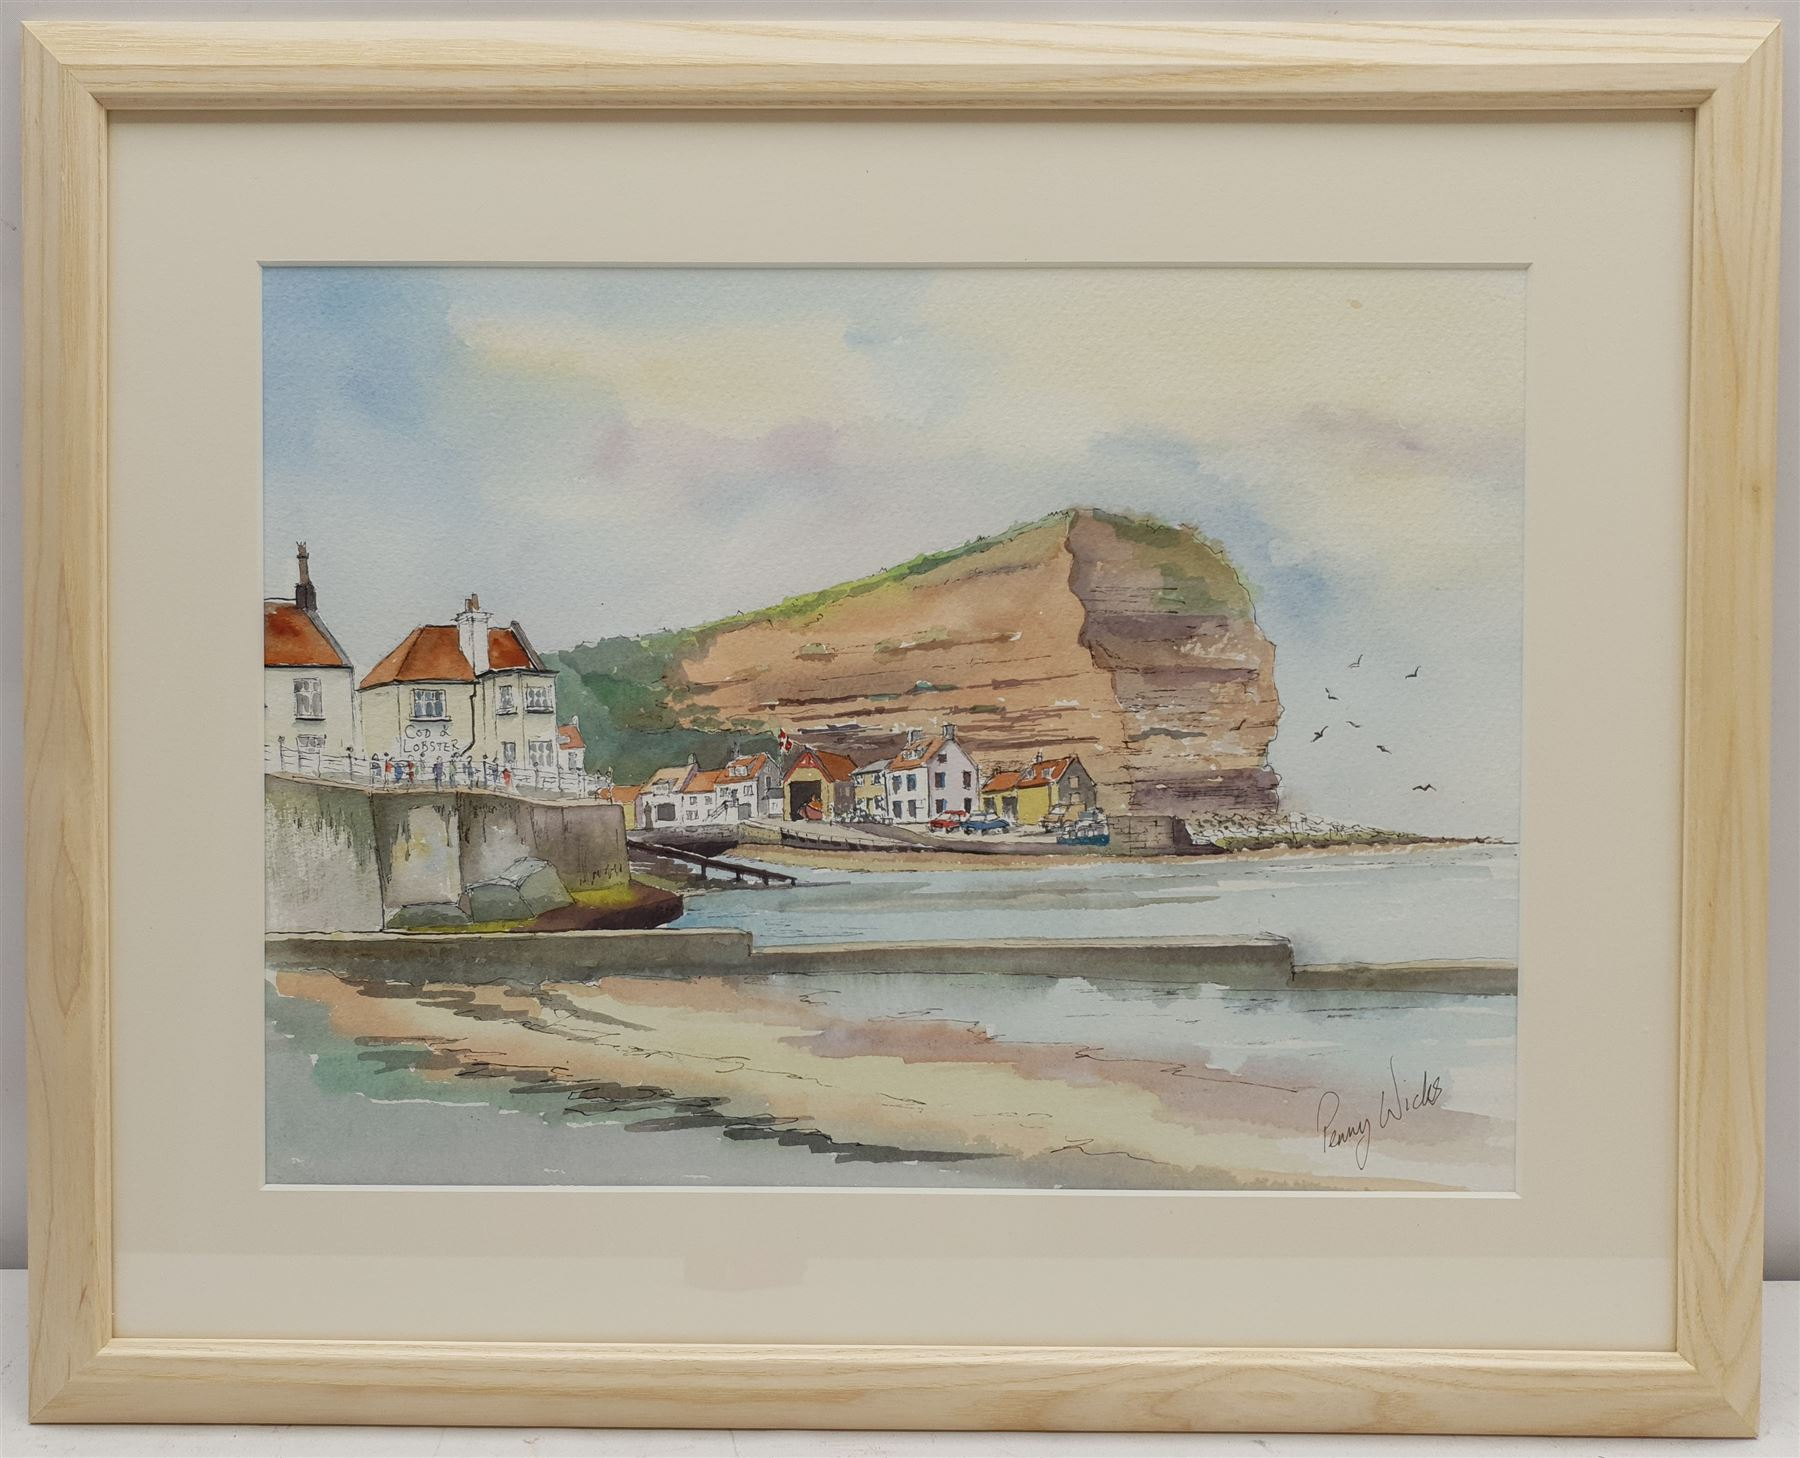 Penny Wicks (British 1949-): Cod and Lobster 'Staithes' - Image 2 of 2